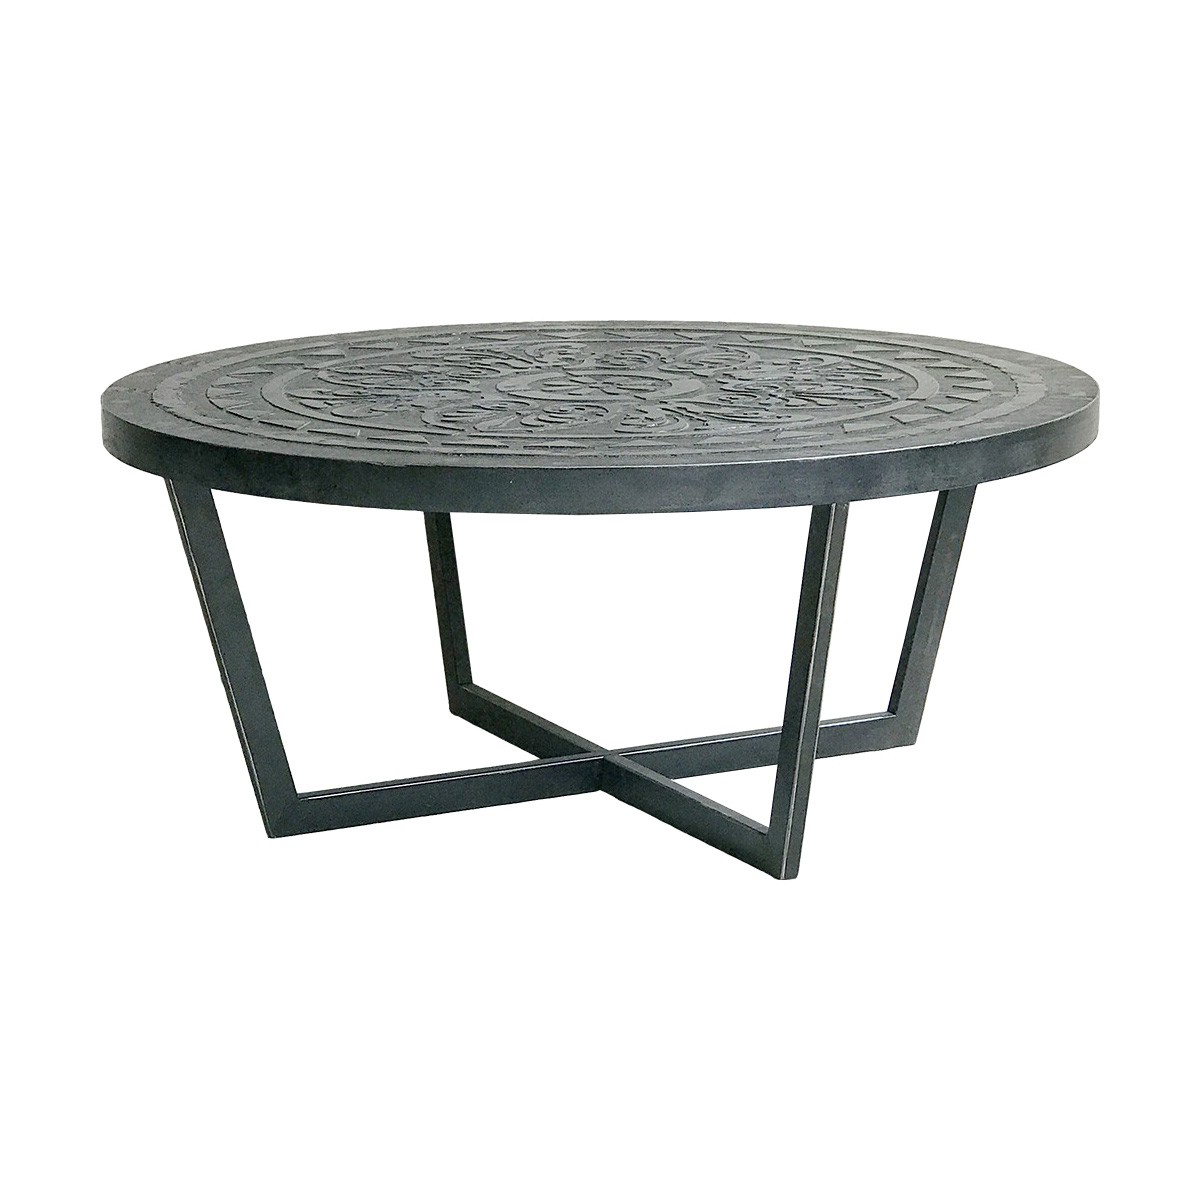 Havannah Round Coffee Table, 80cm